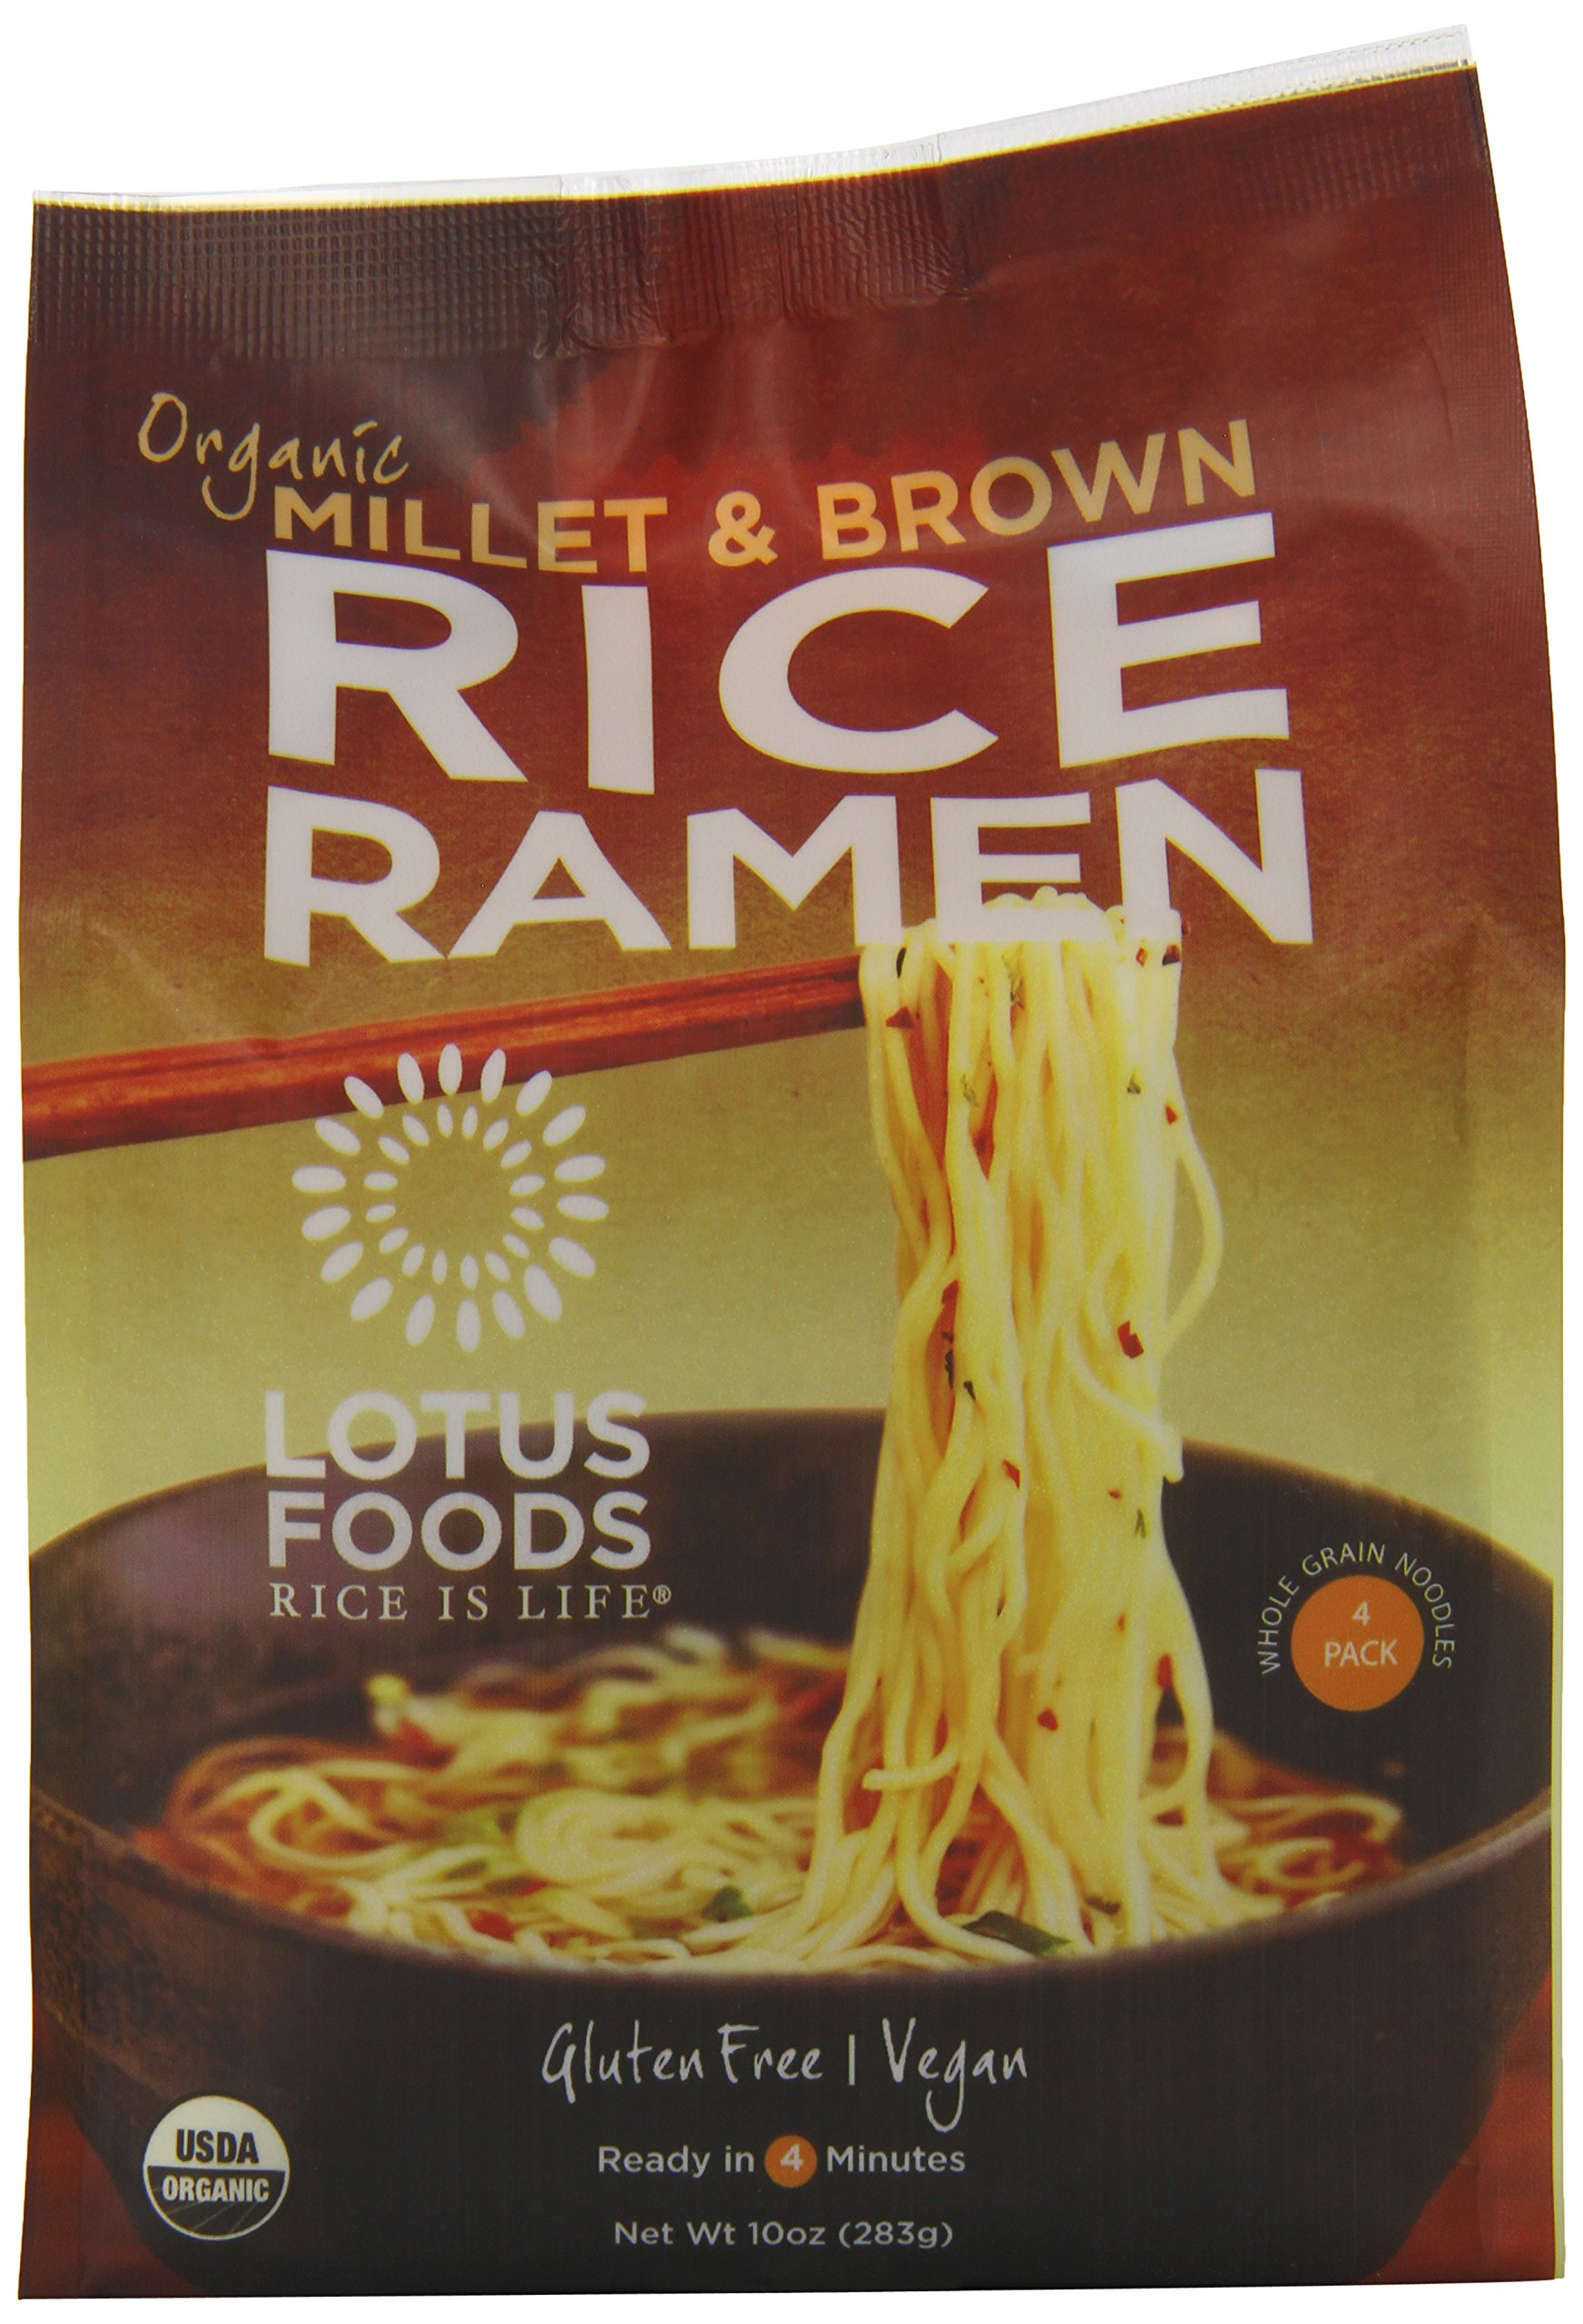 Lotus Foods Gourmet Organic Rice Ramen Noodles, Millet and Brown Rice, 6 Count by Lotus Foods